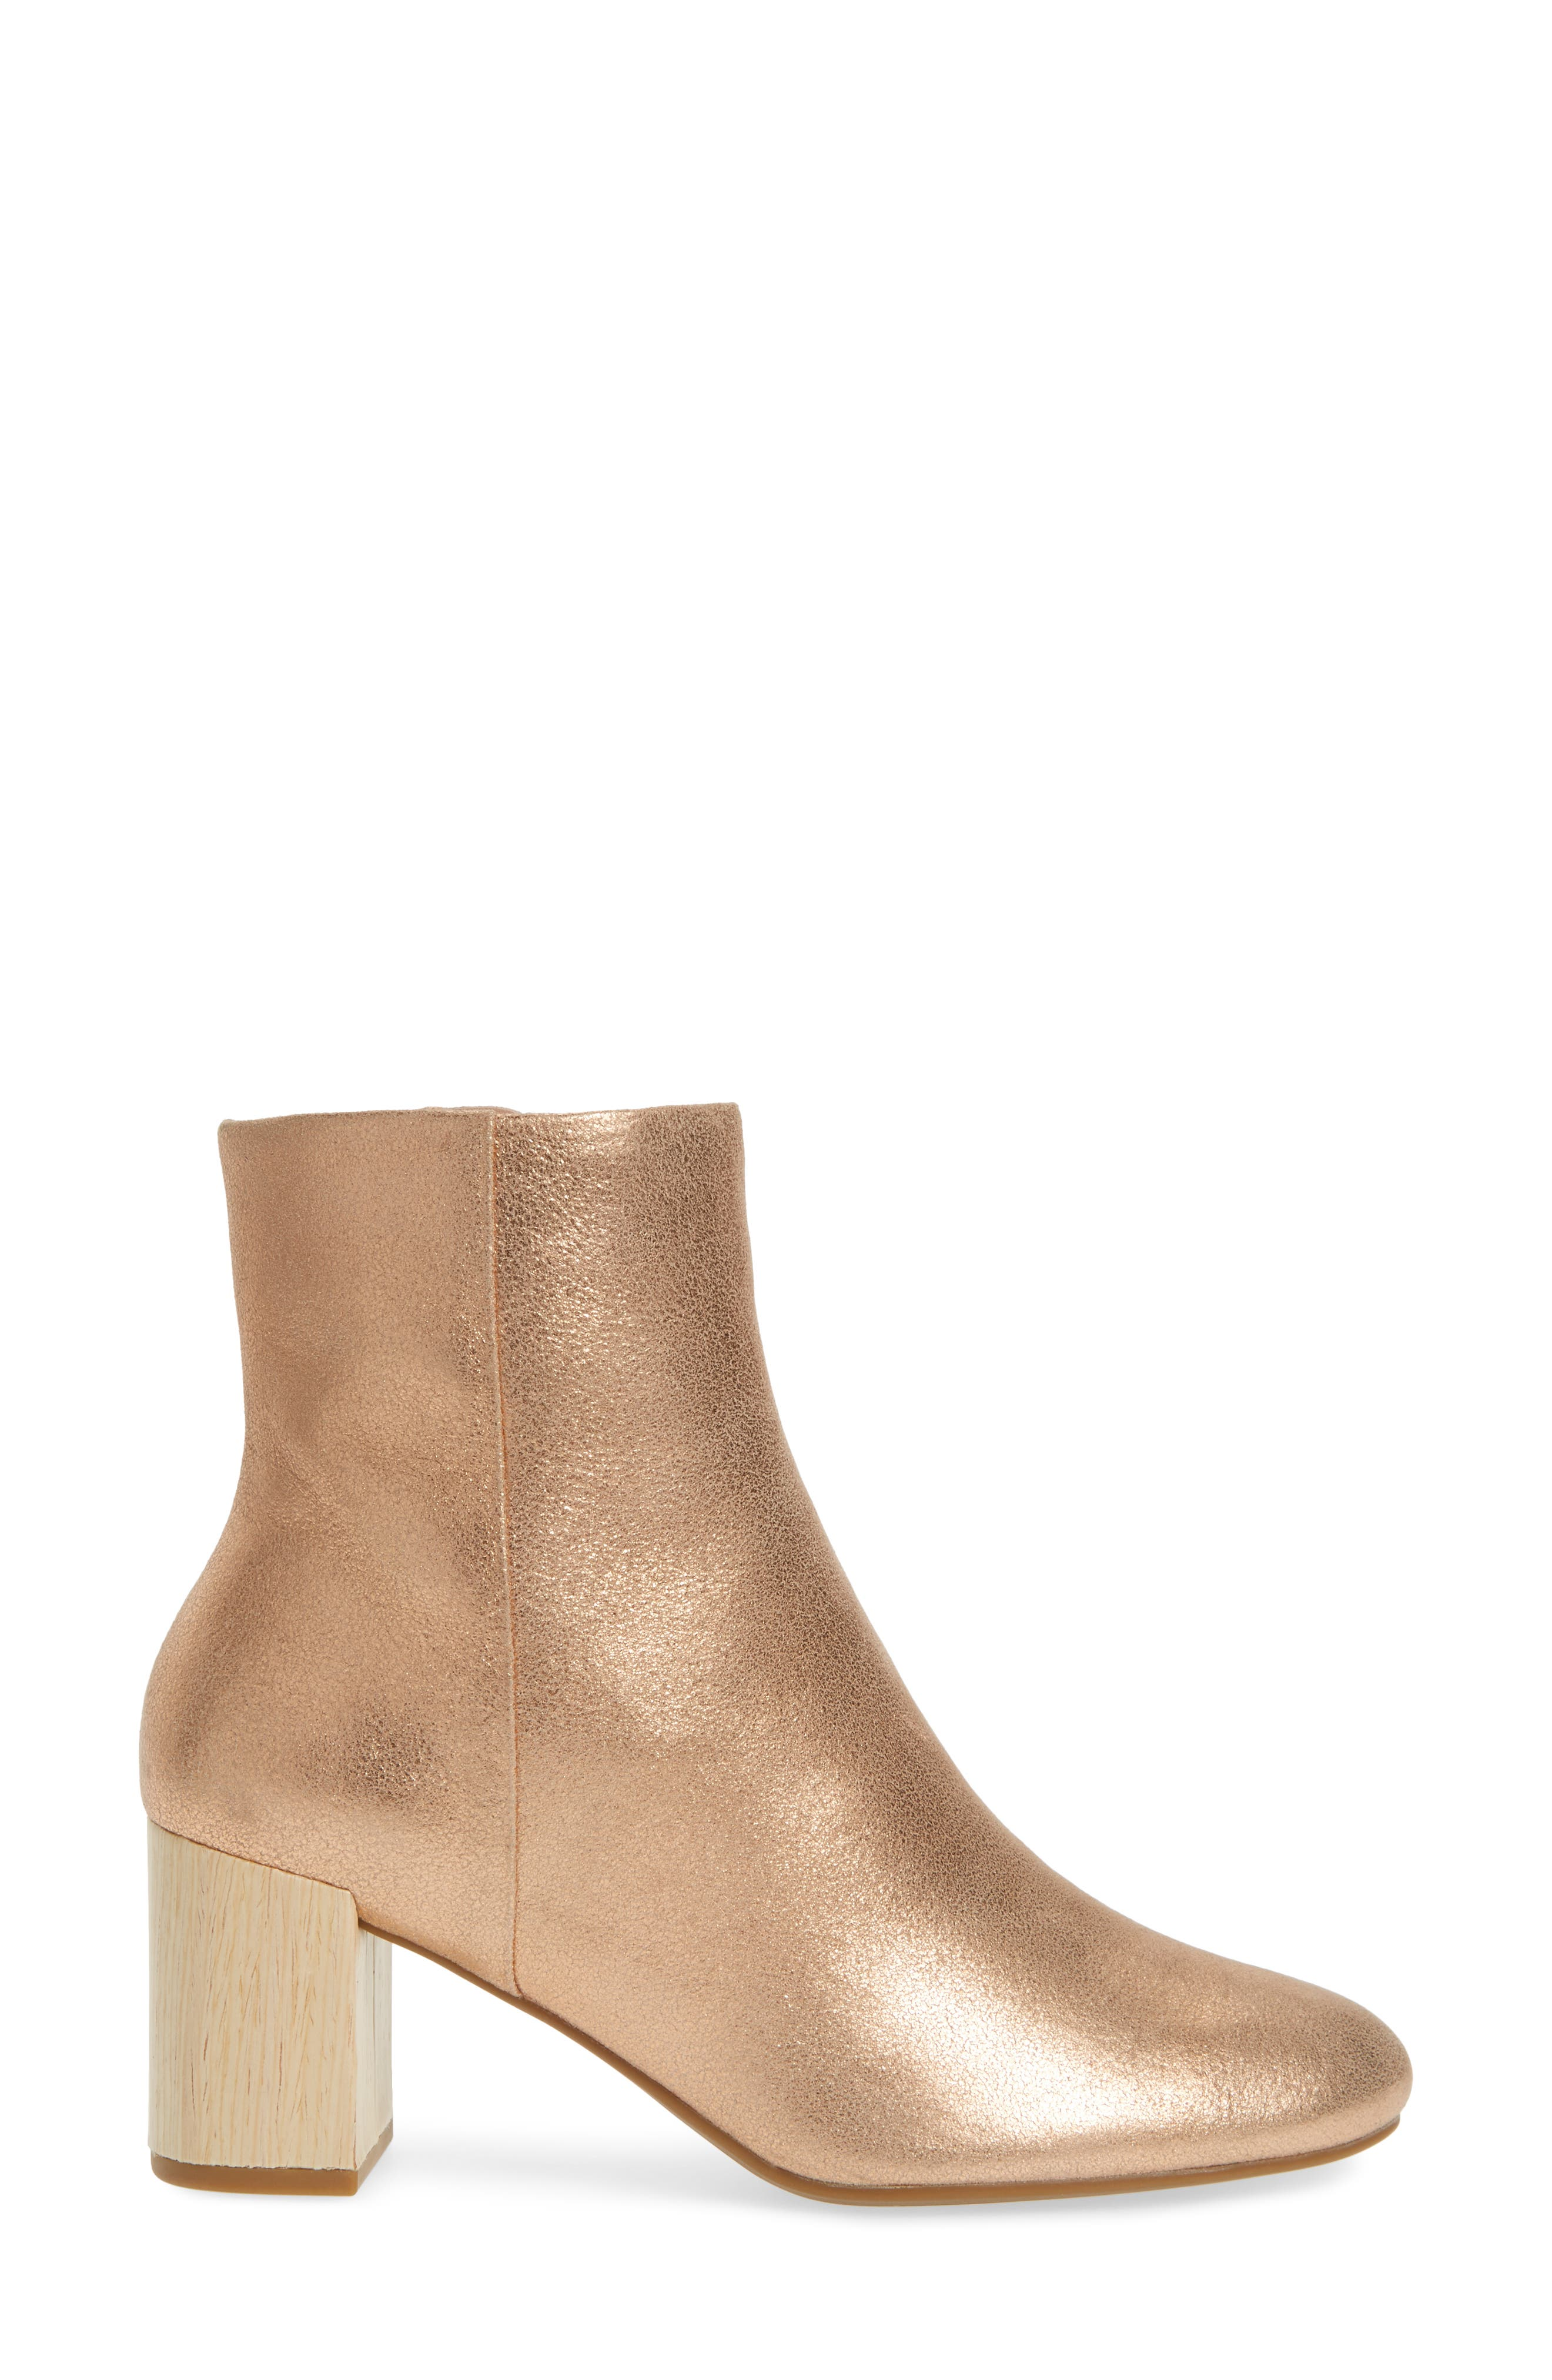 Cassidy Block Heel Bootie,                             Alternate thumbnail 3, color,                             Rose Gold Leather